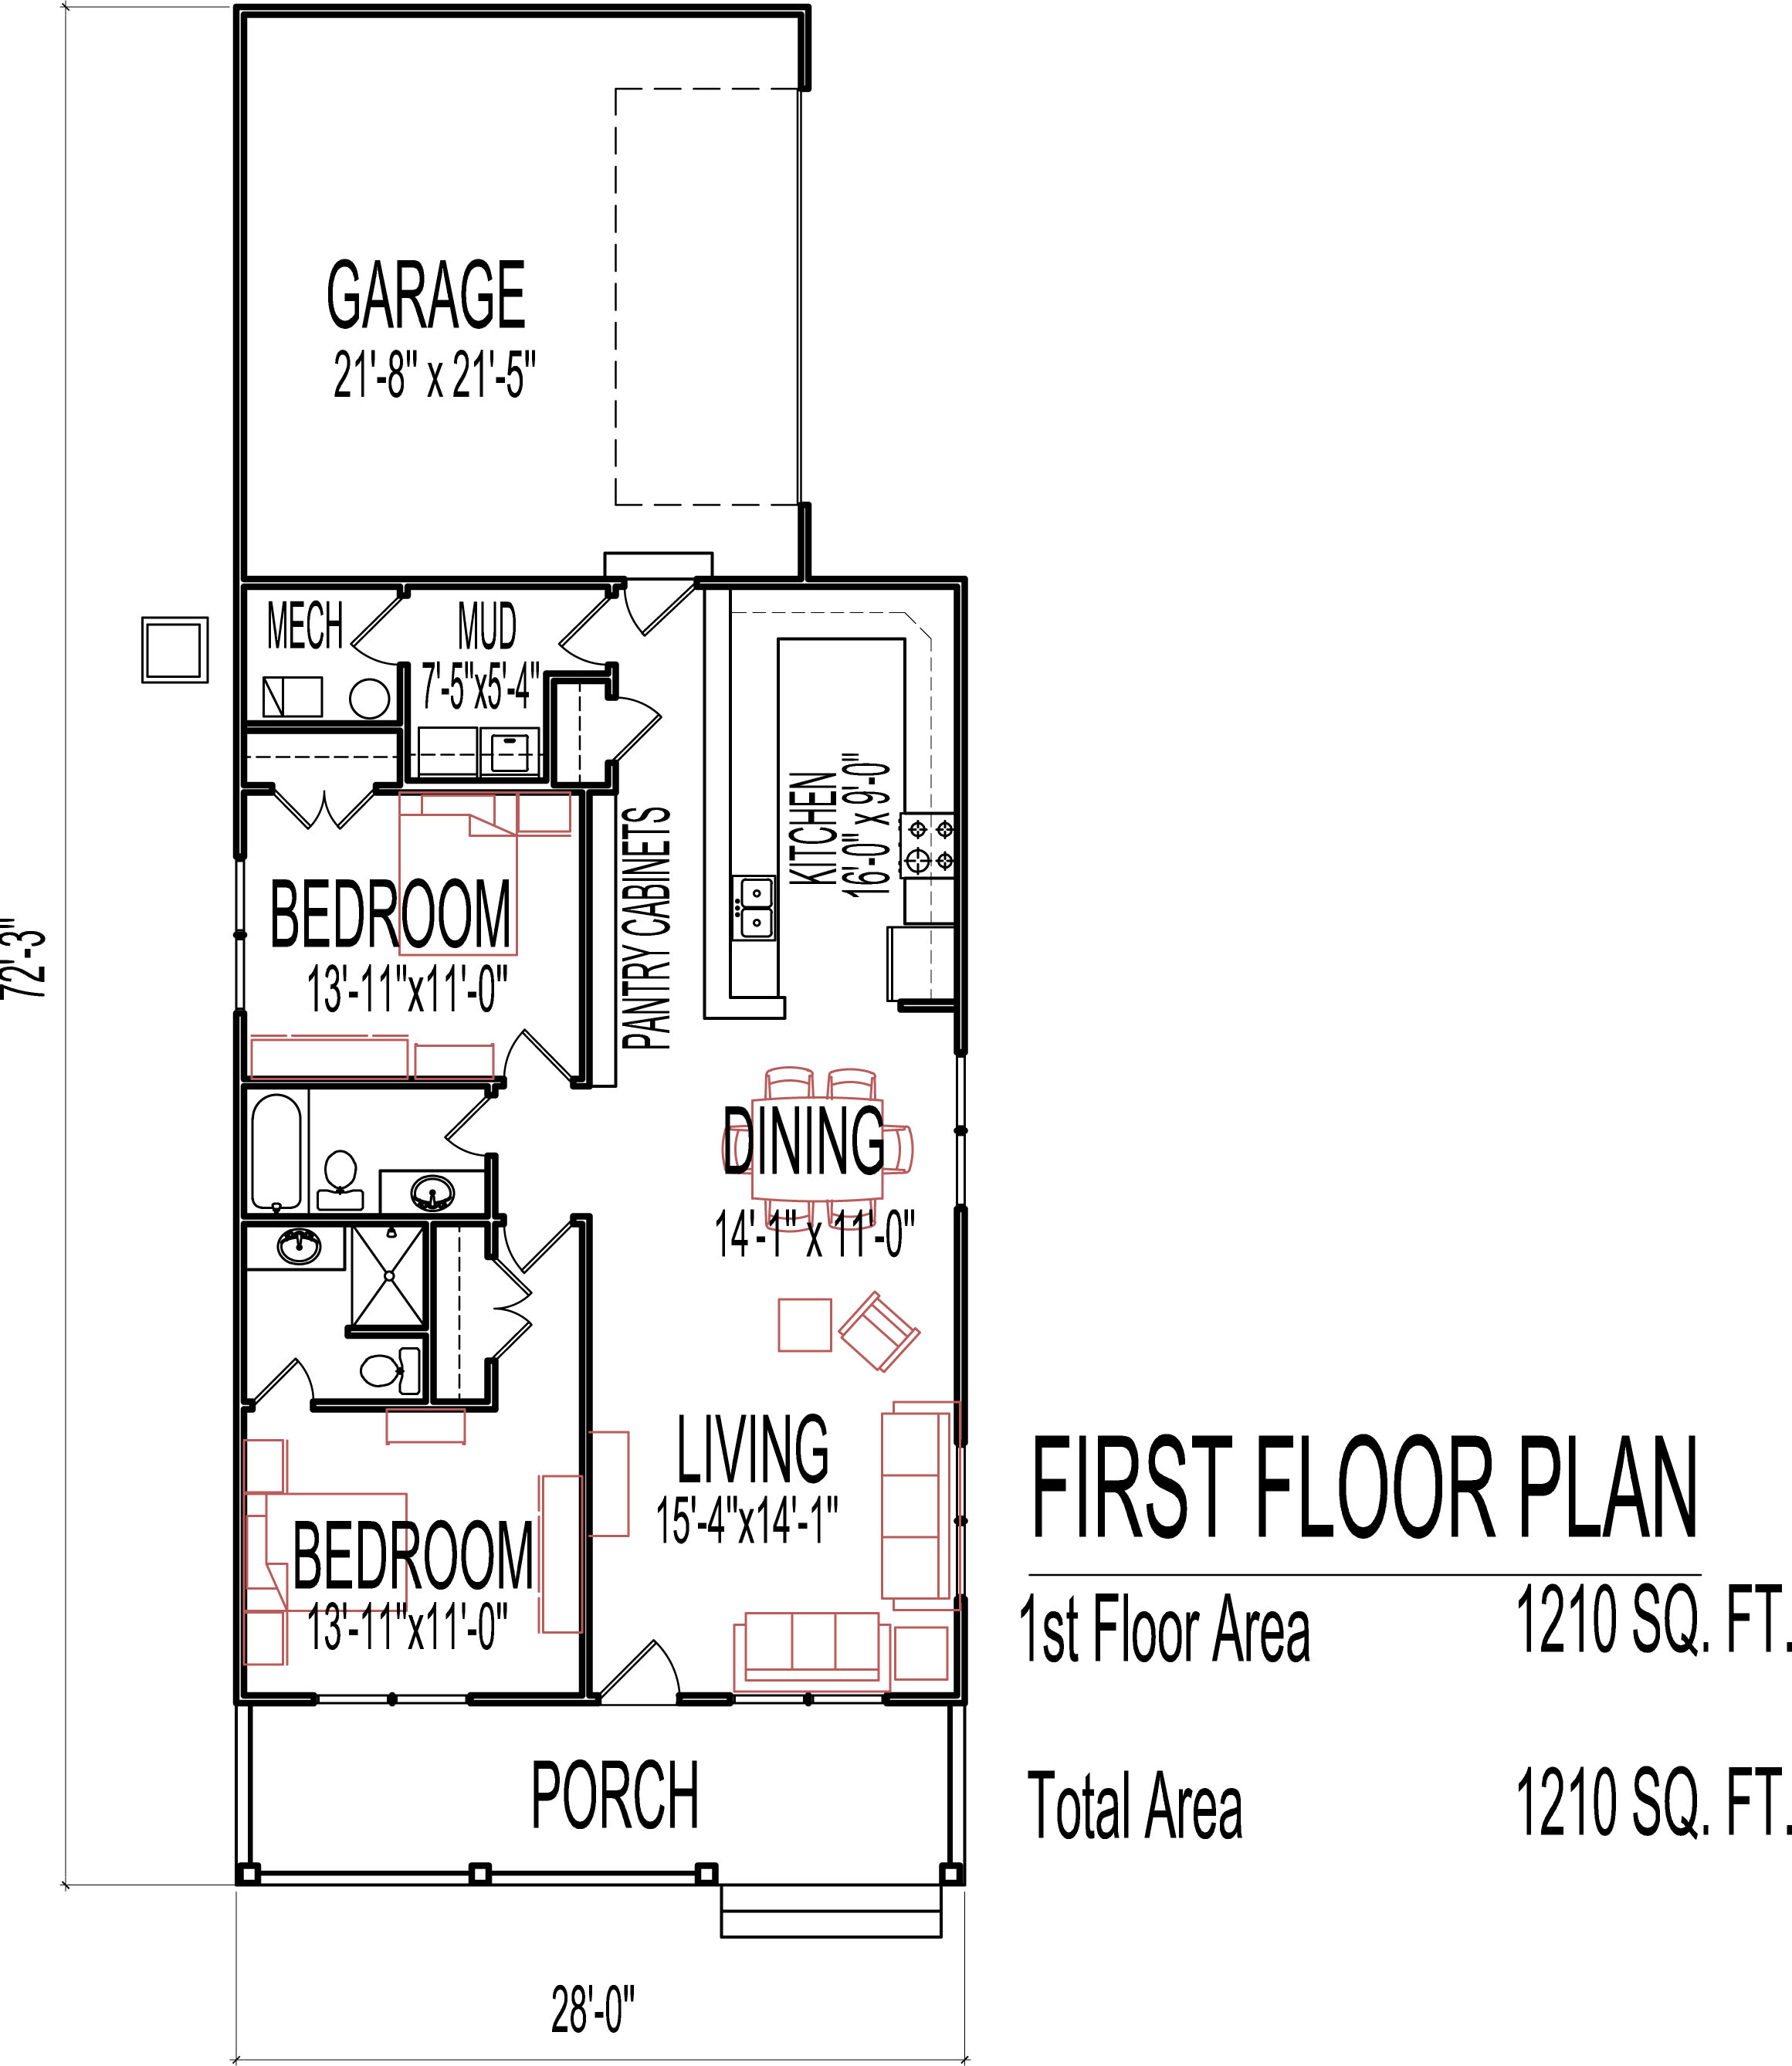 basic single story floor plans. Small Low Cost Economical 2 Bedroom Bath 1200 Sq Ft Single Story House  Floor Plans Two one